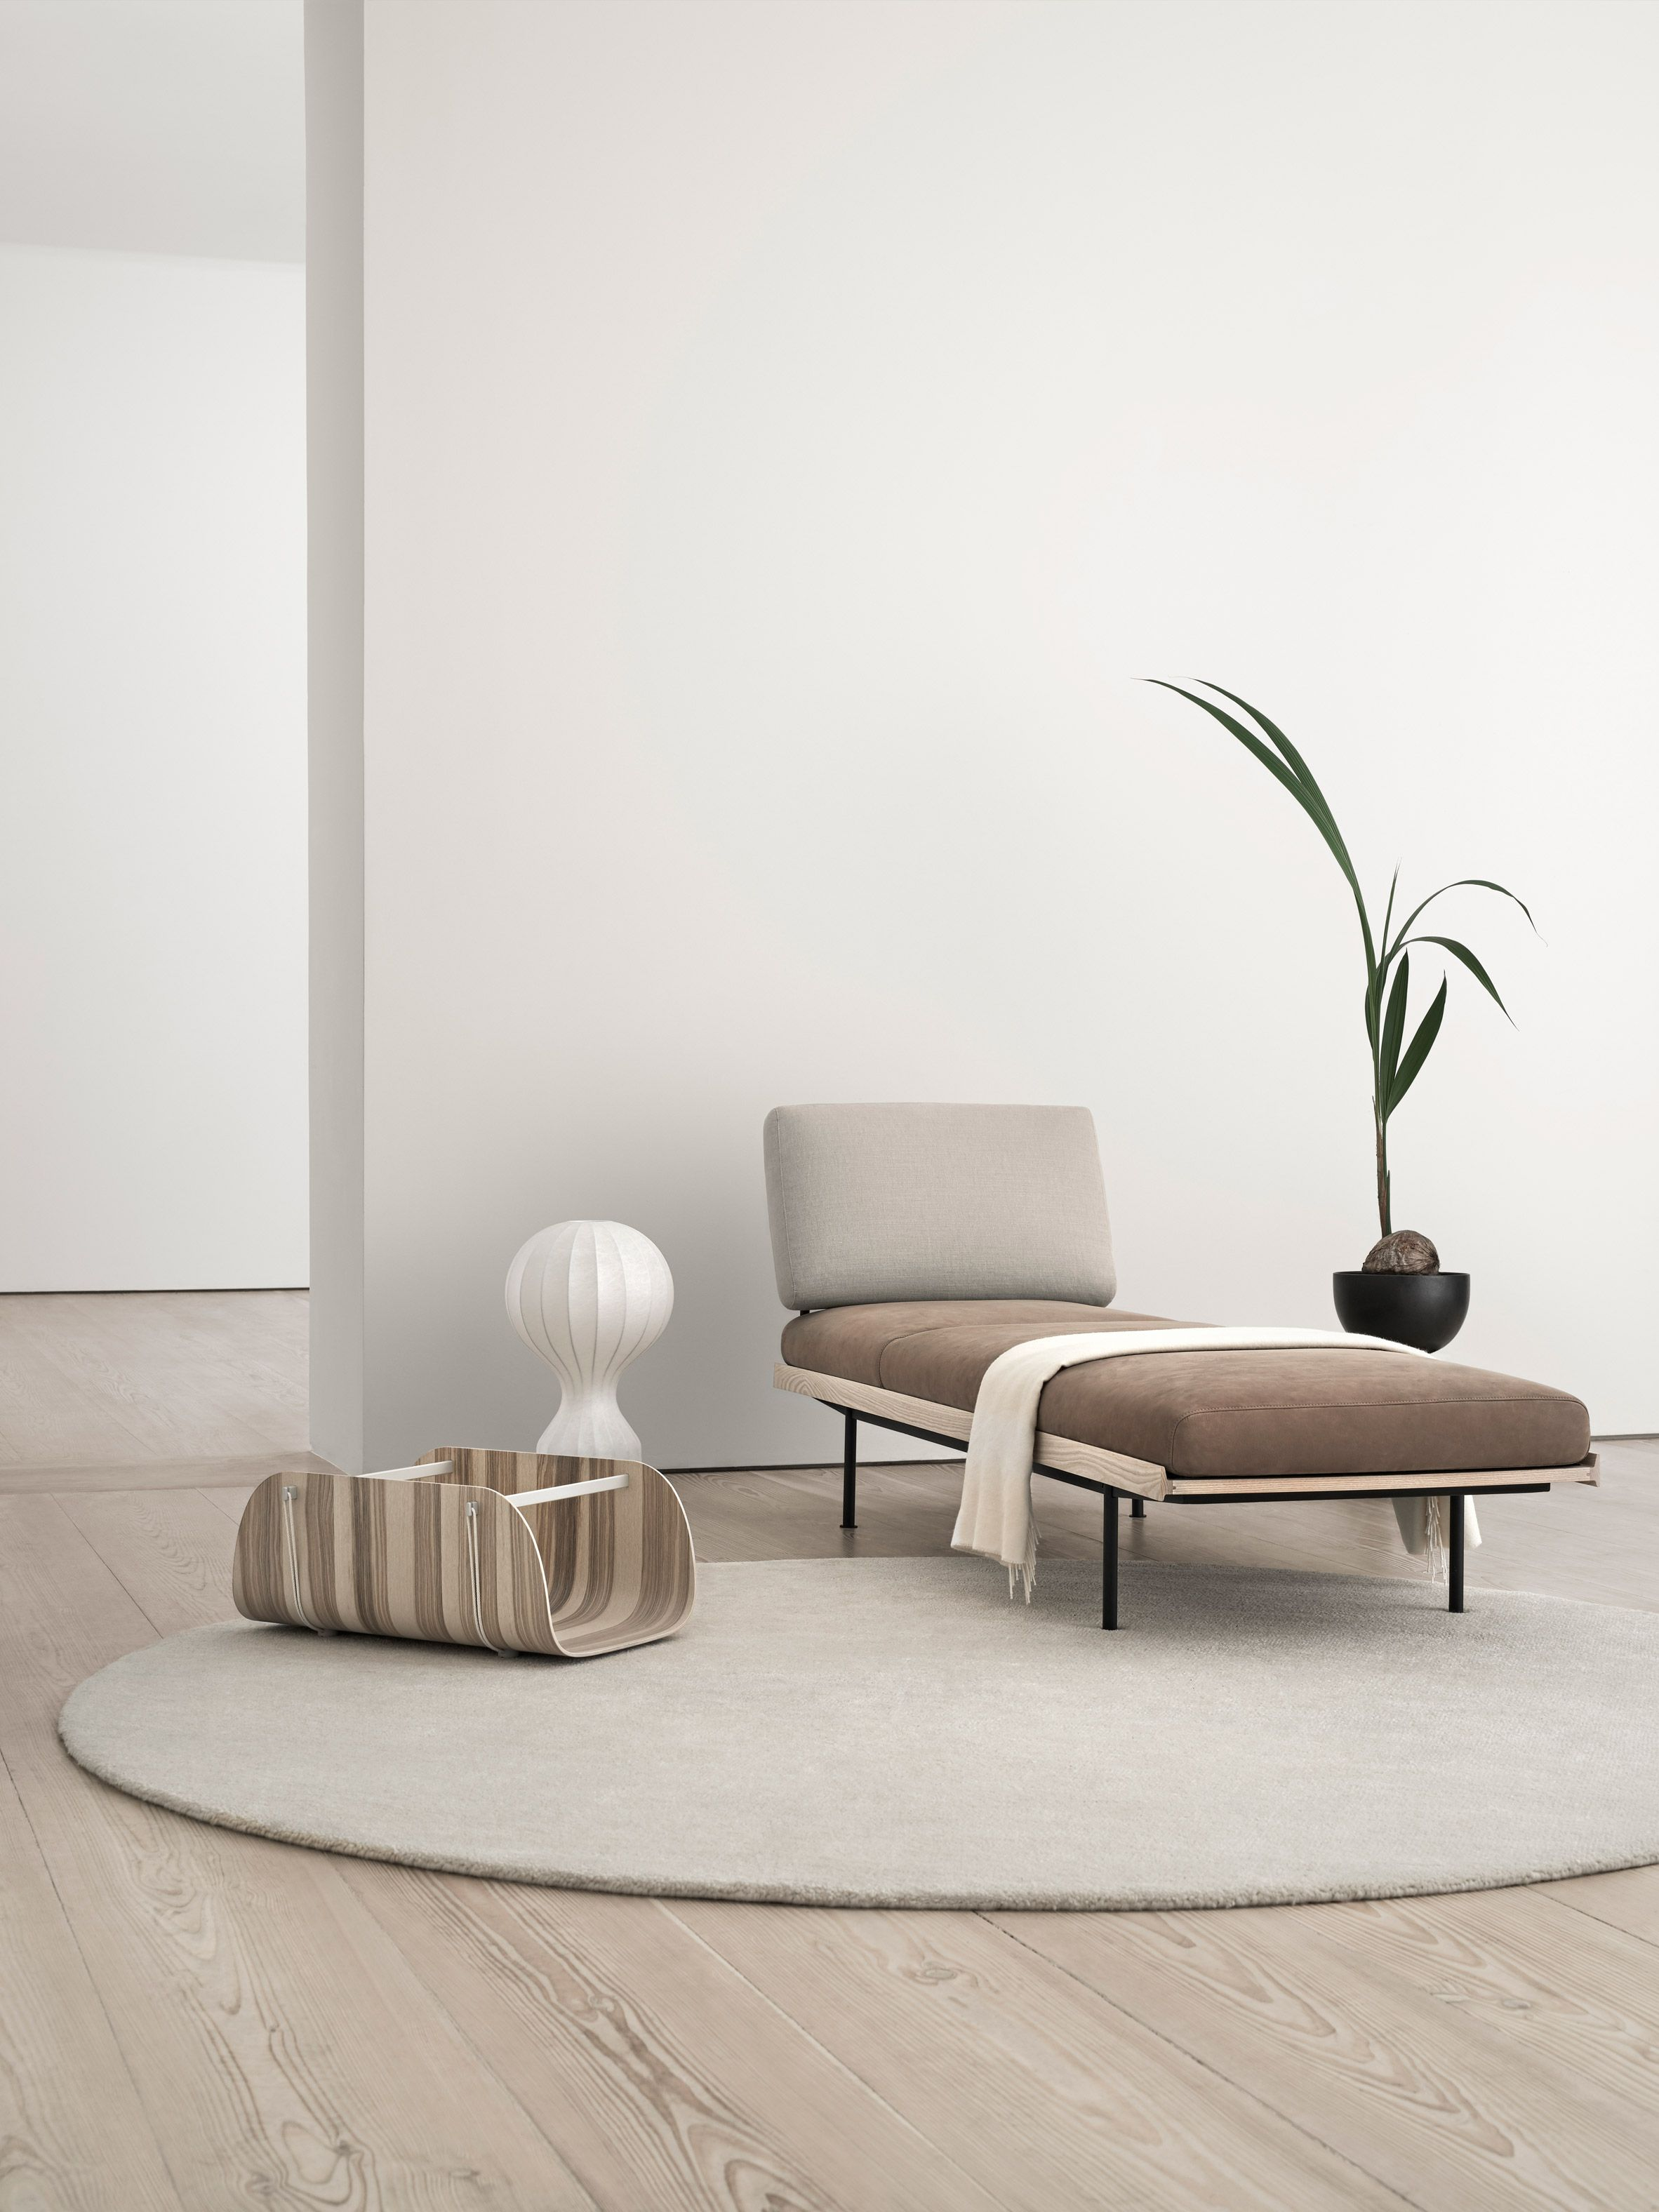 Swedish brand voice launches fundamental furniture collection